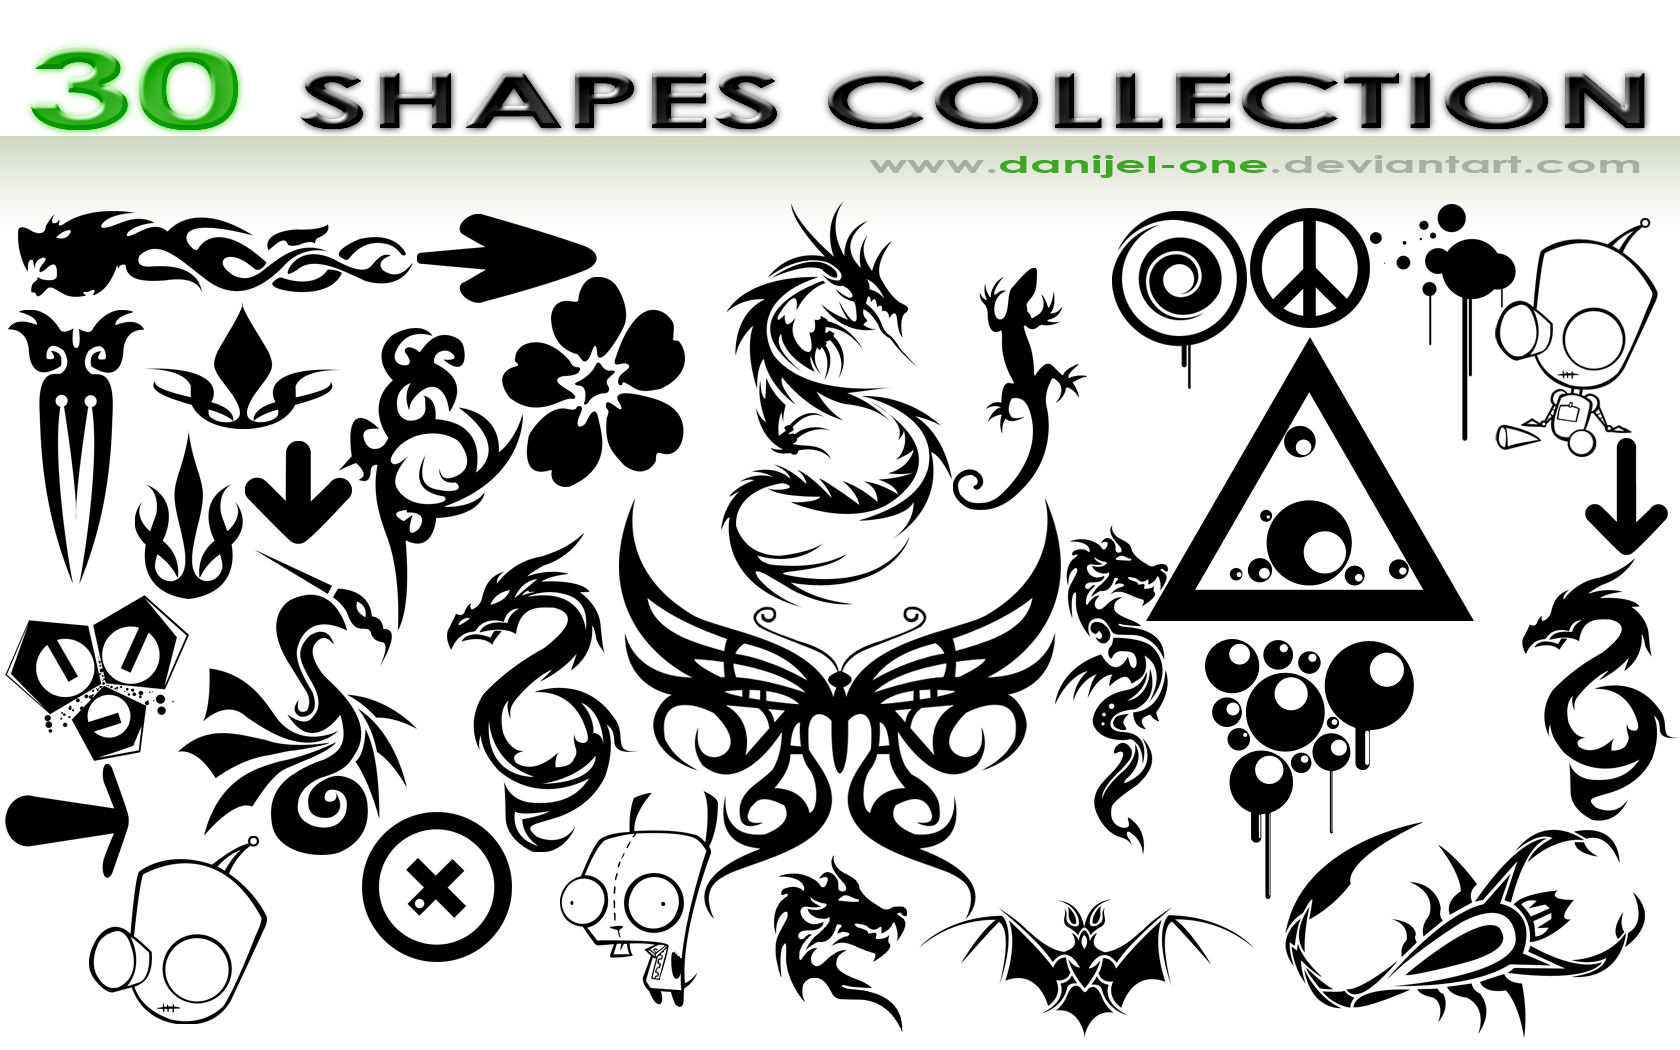 14 Photoshop Custom Shapes For Logo Images